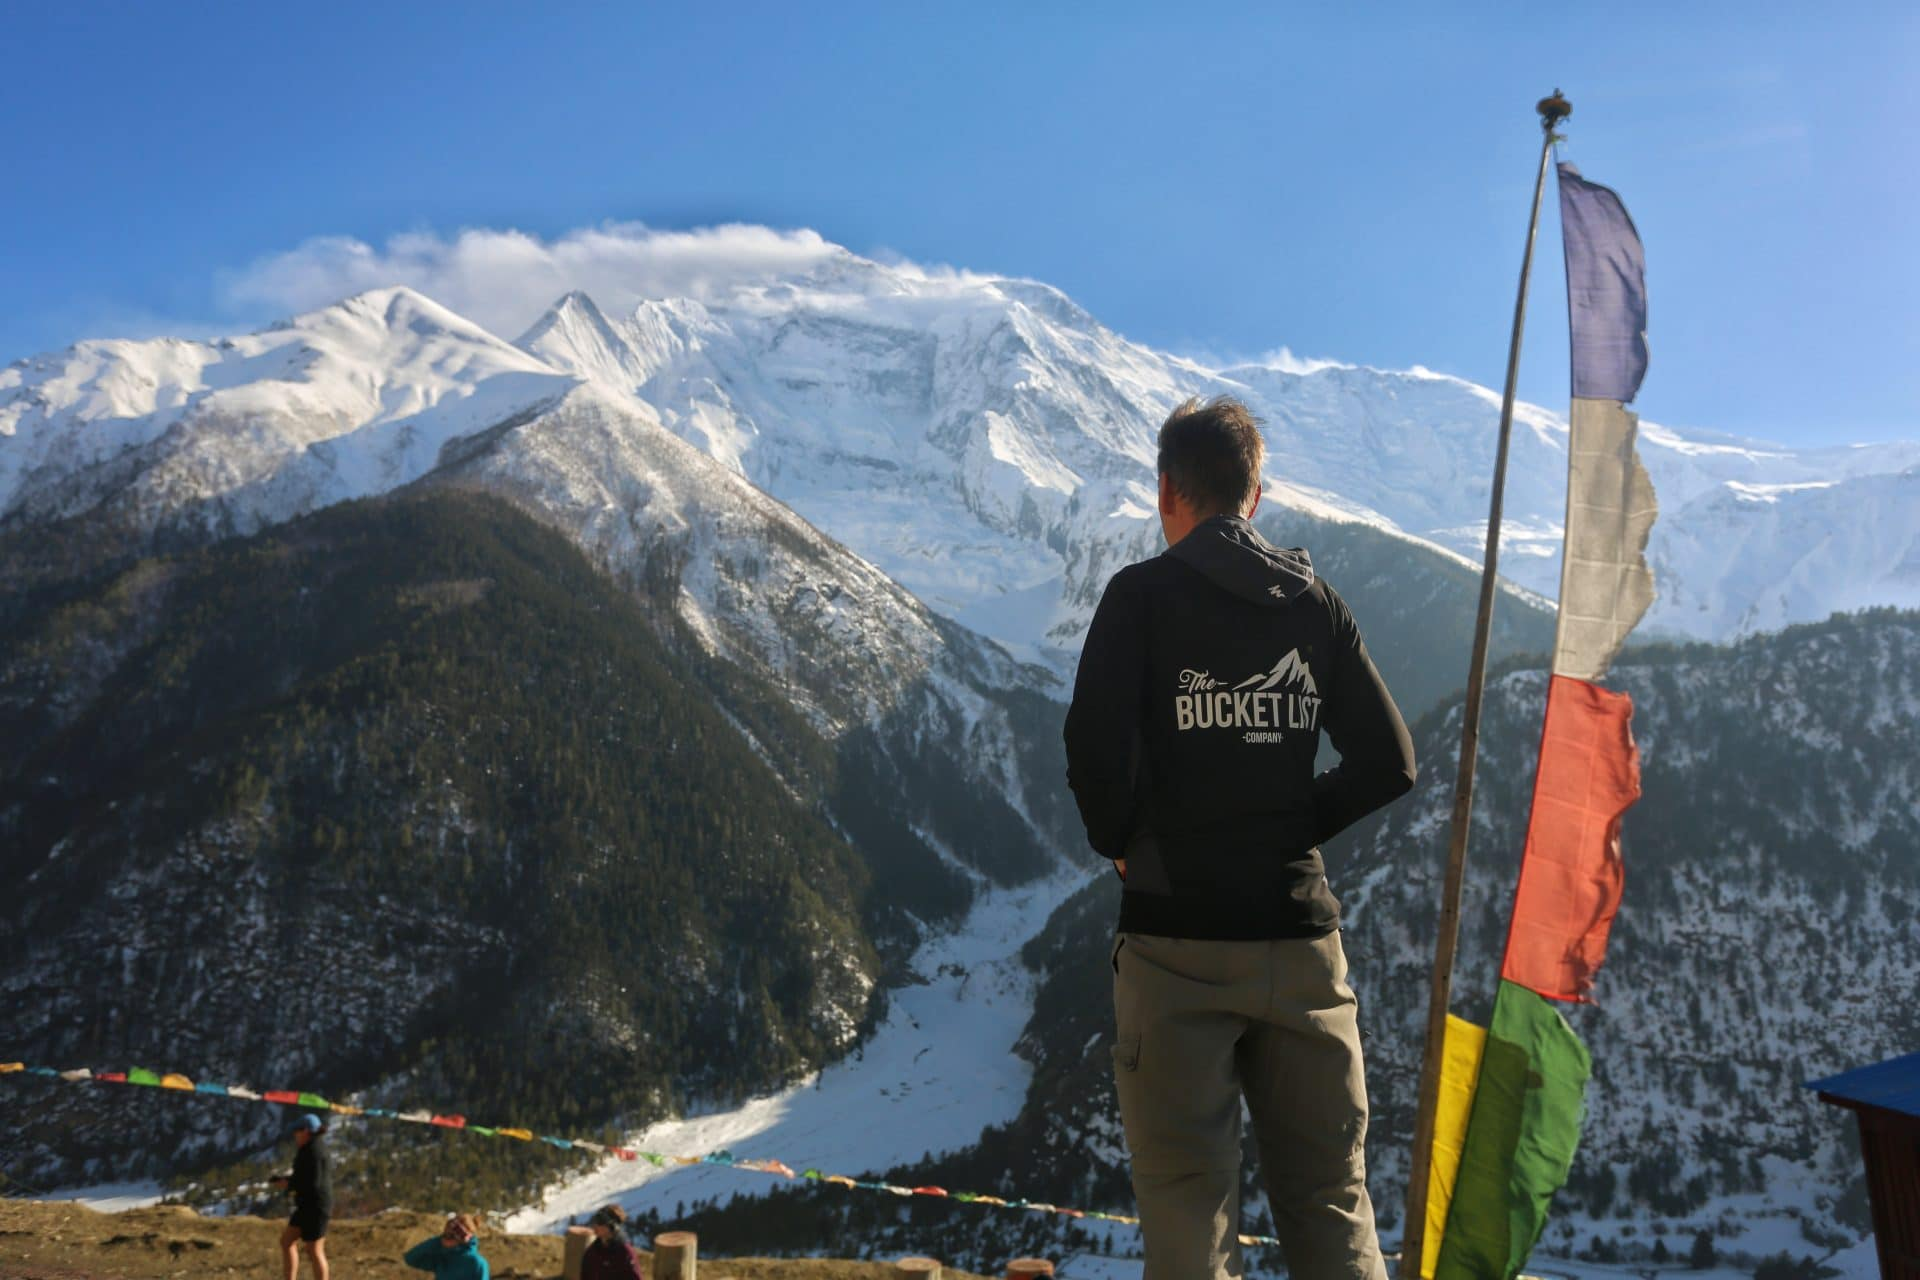 Guide Dave on the Annapurna Circuit